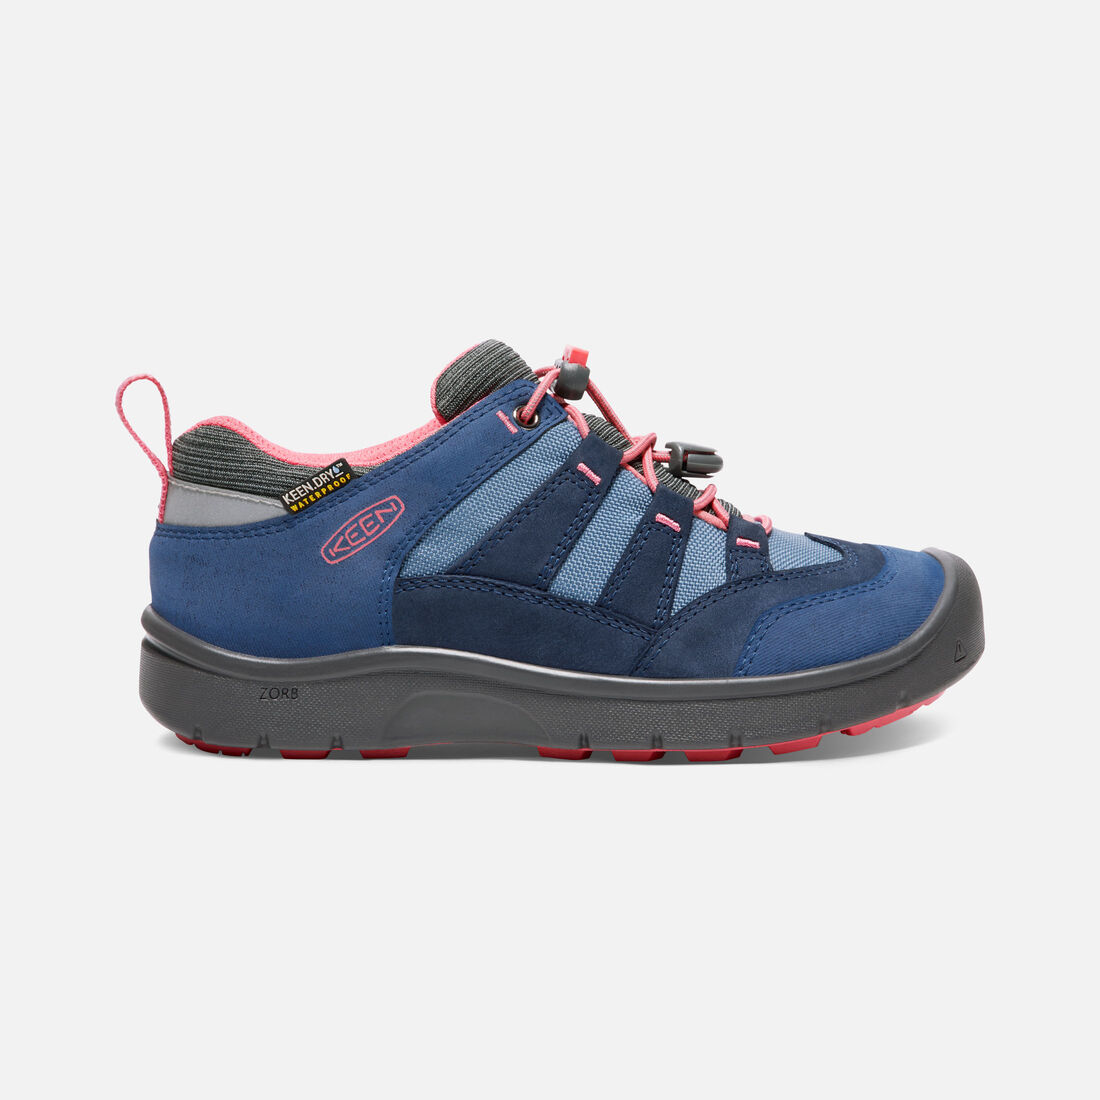 Big Kids' HIKEPORT Waterproof in Dress Blues/Sugar Coral - large view.